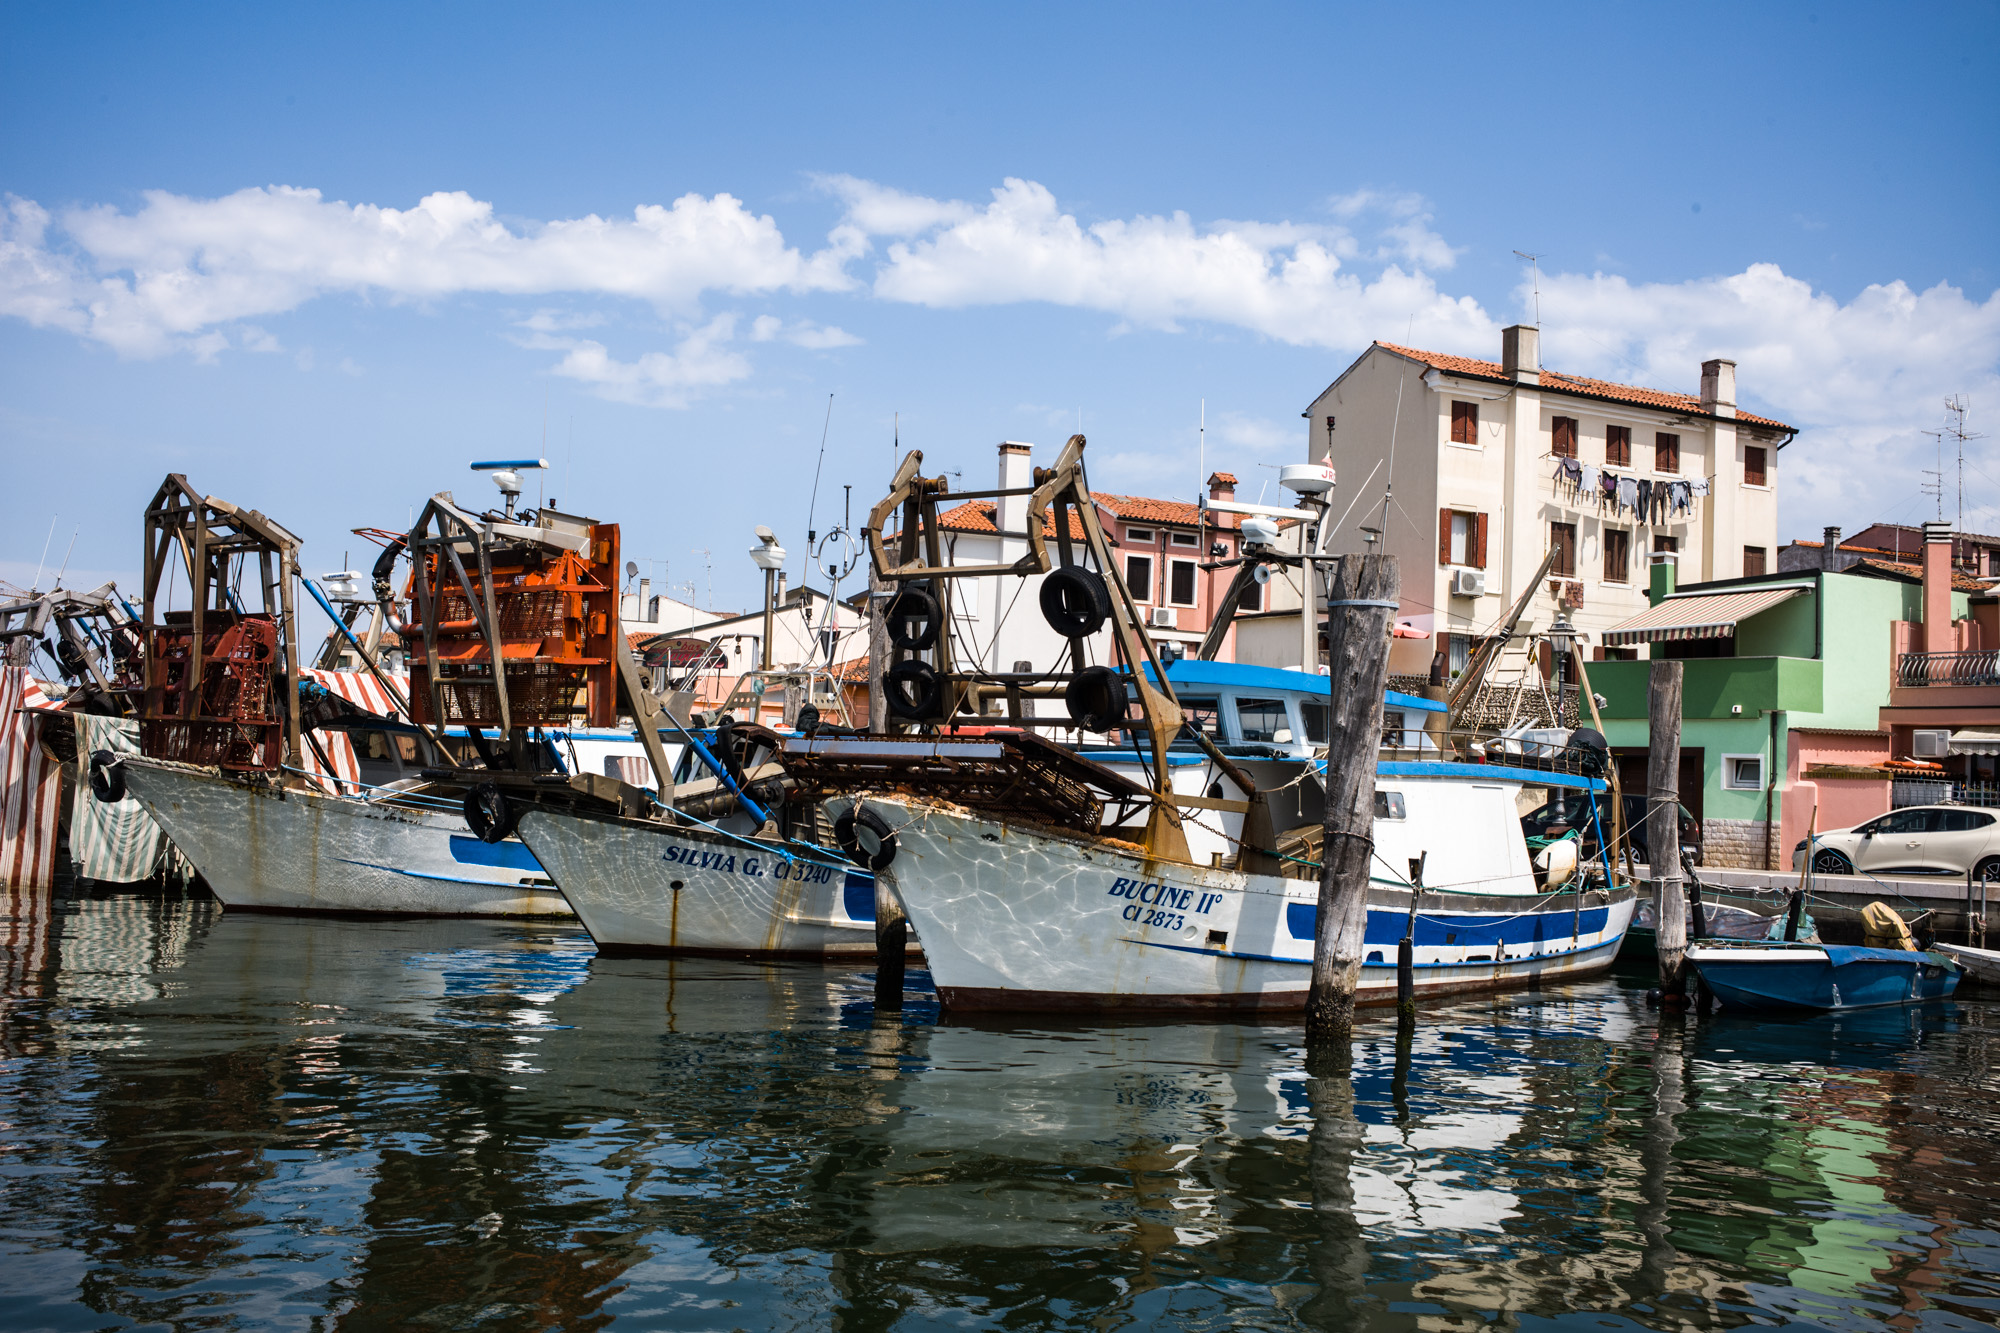 Chioggia is located across the Lagoon from Venice